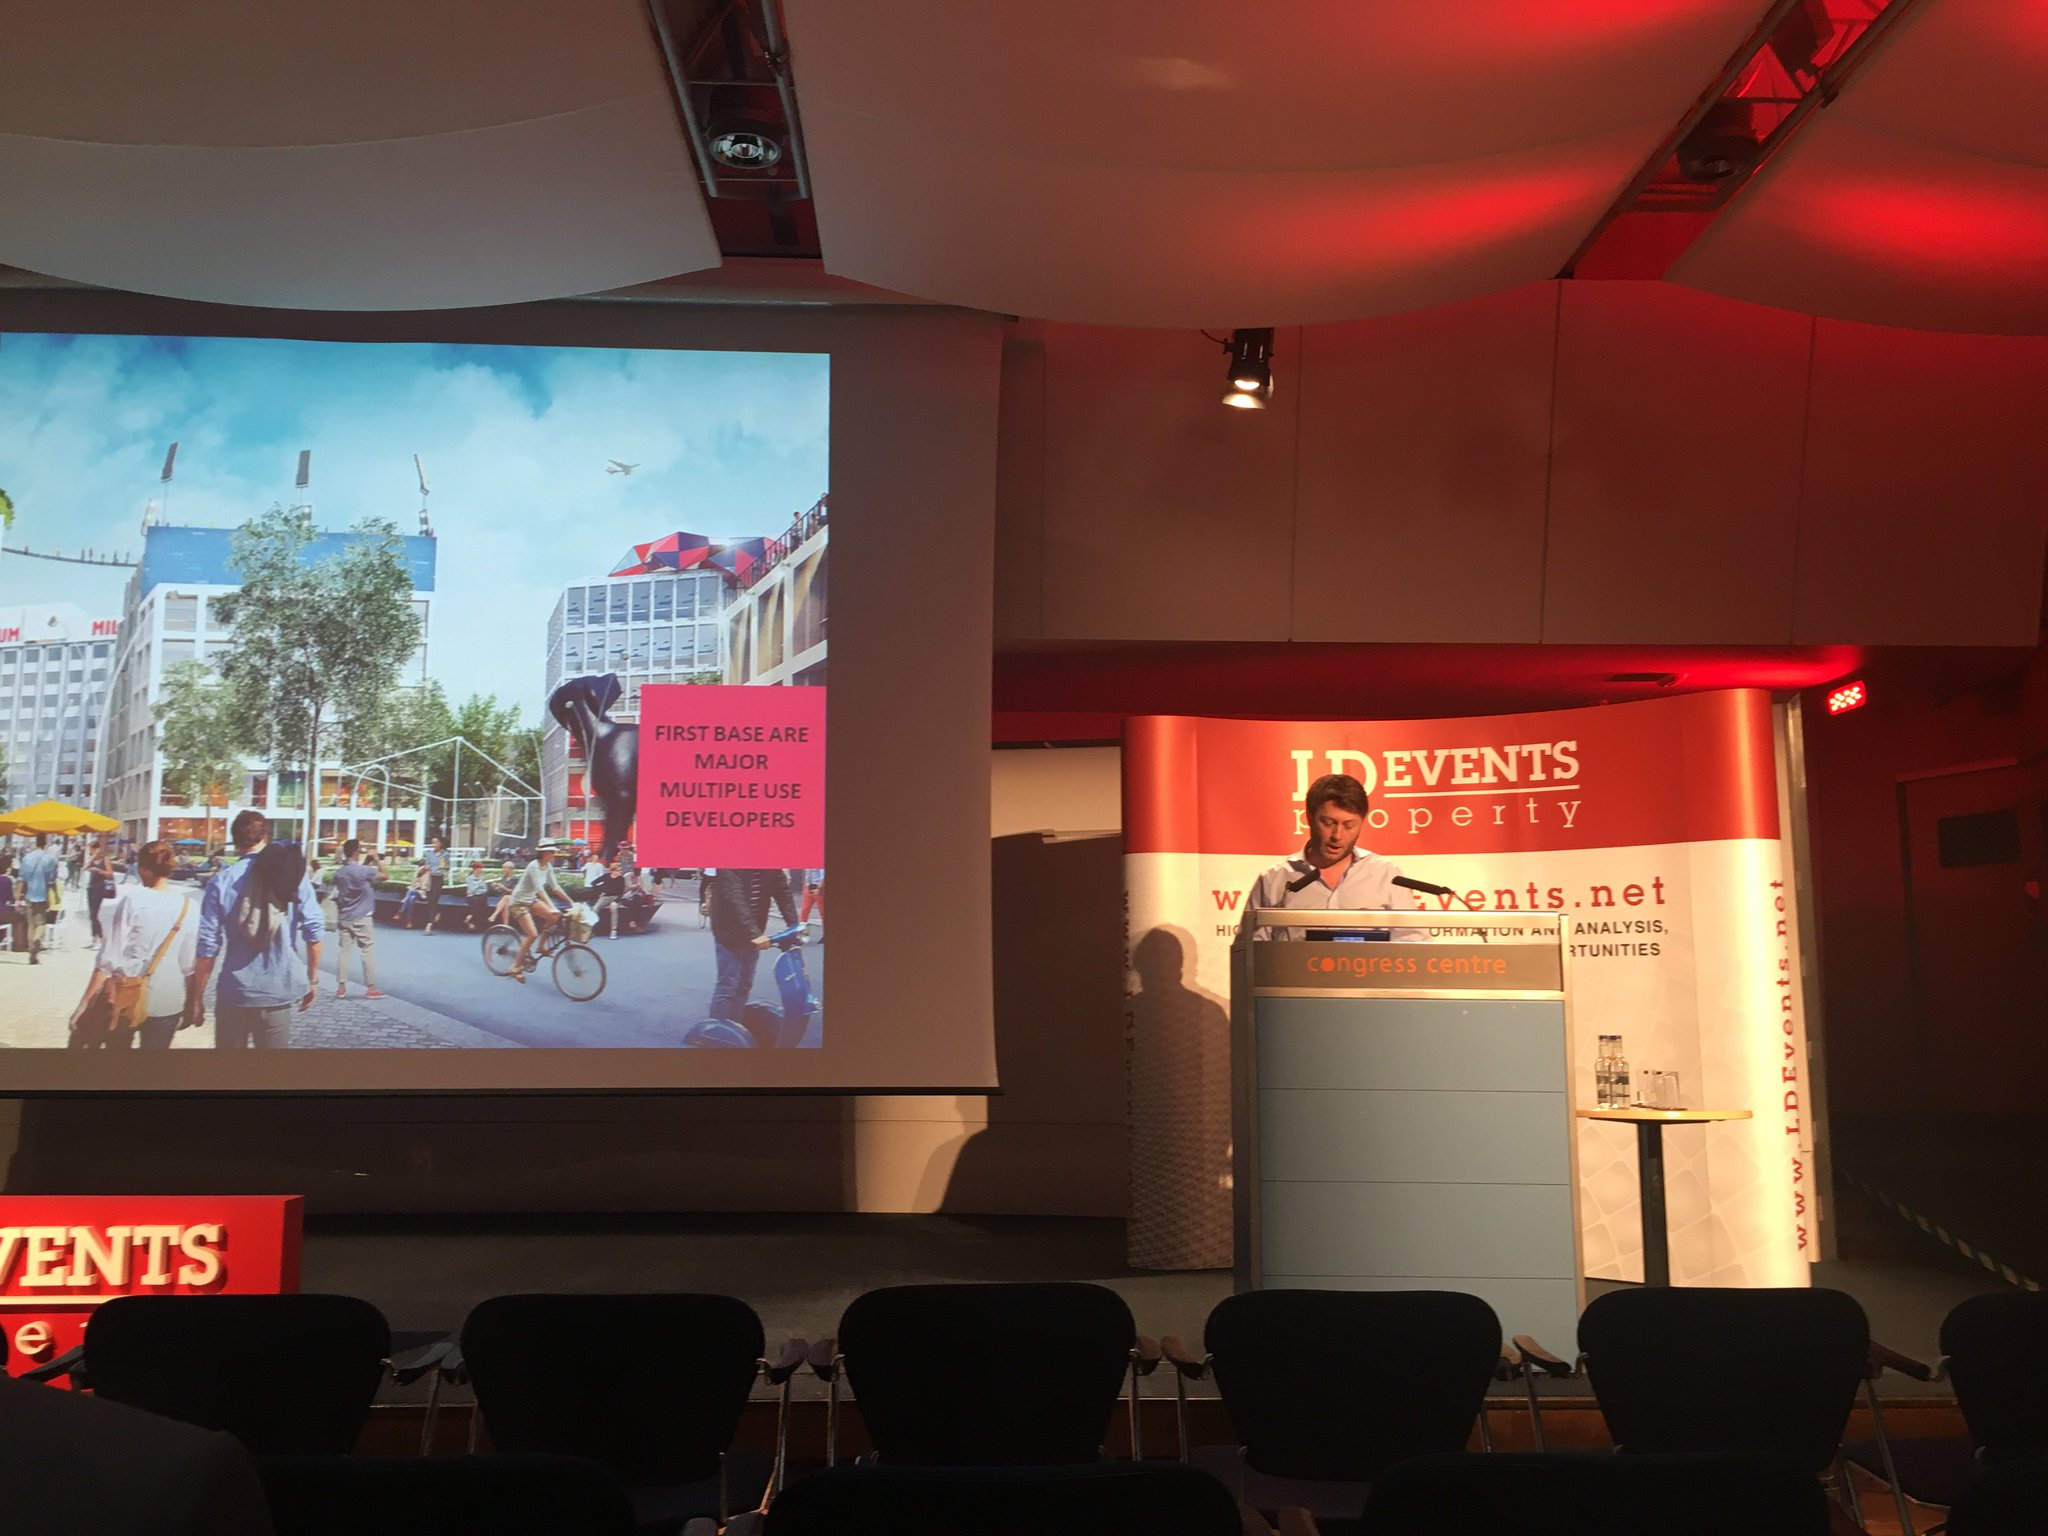 """First Base on Twitter: """"@FirstBaseUrban Barry Jessup at #LondonResi The future brings homes on water, underwater, underground and in the sky ..."""